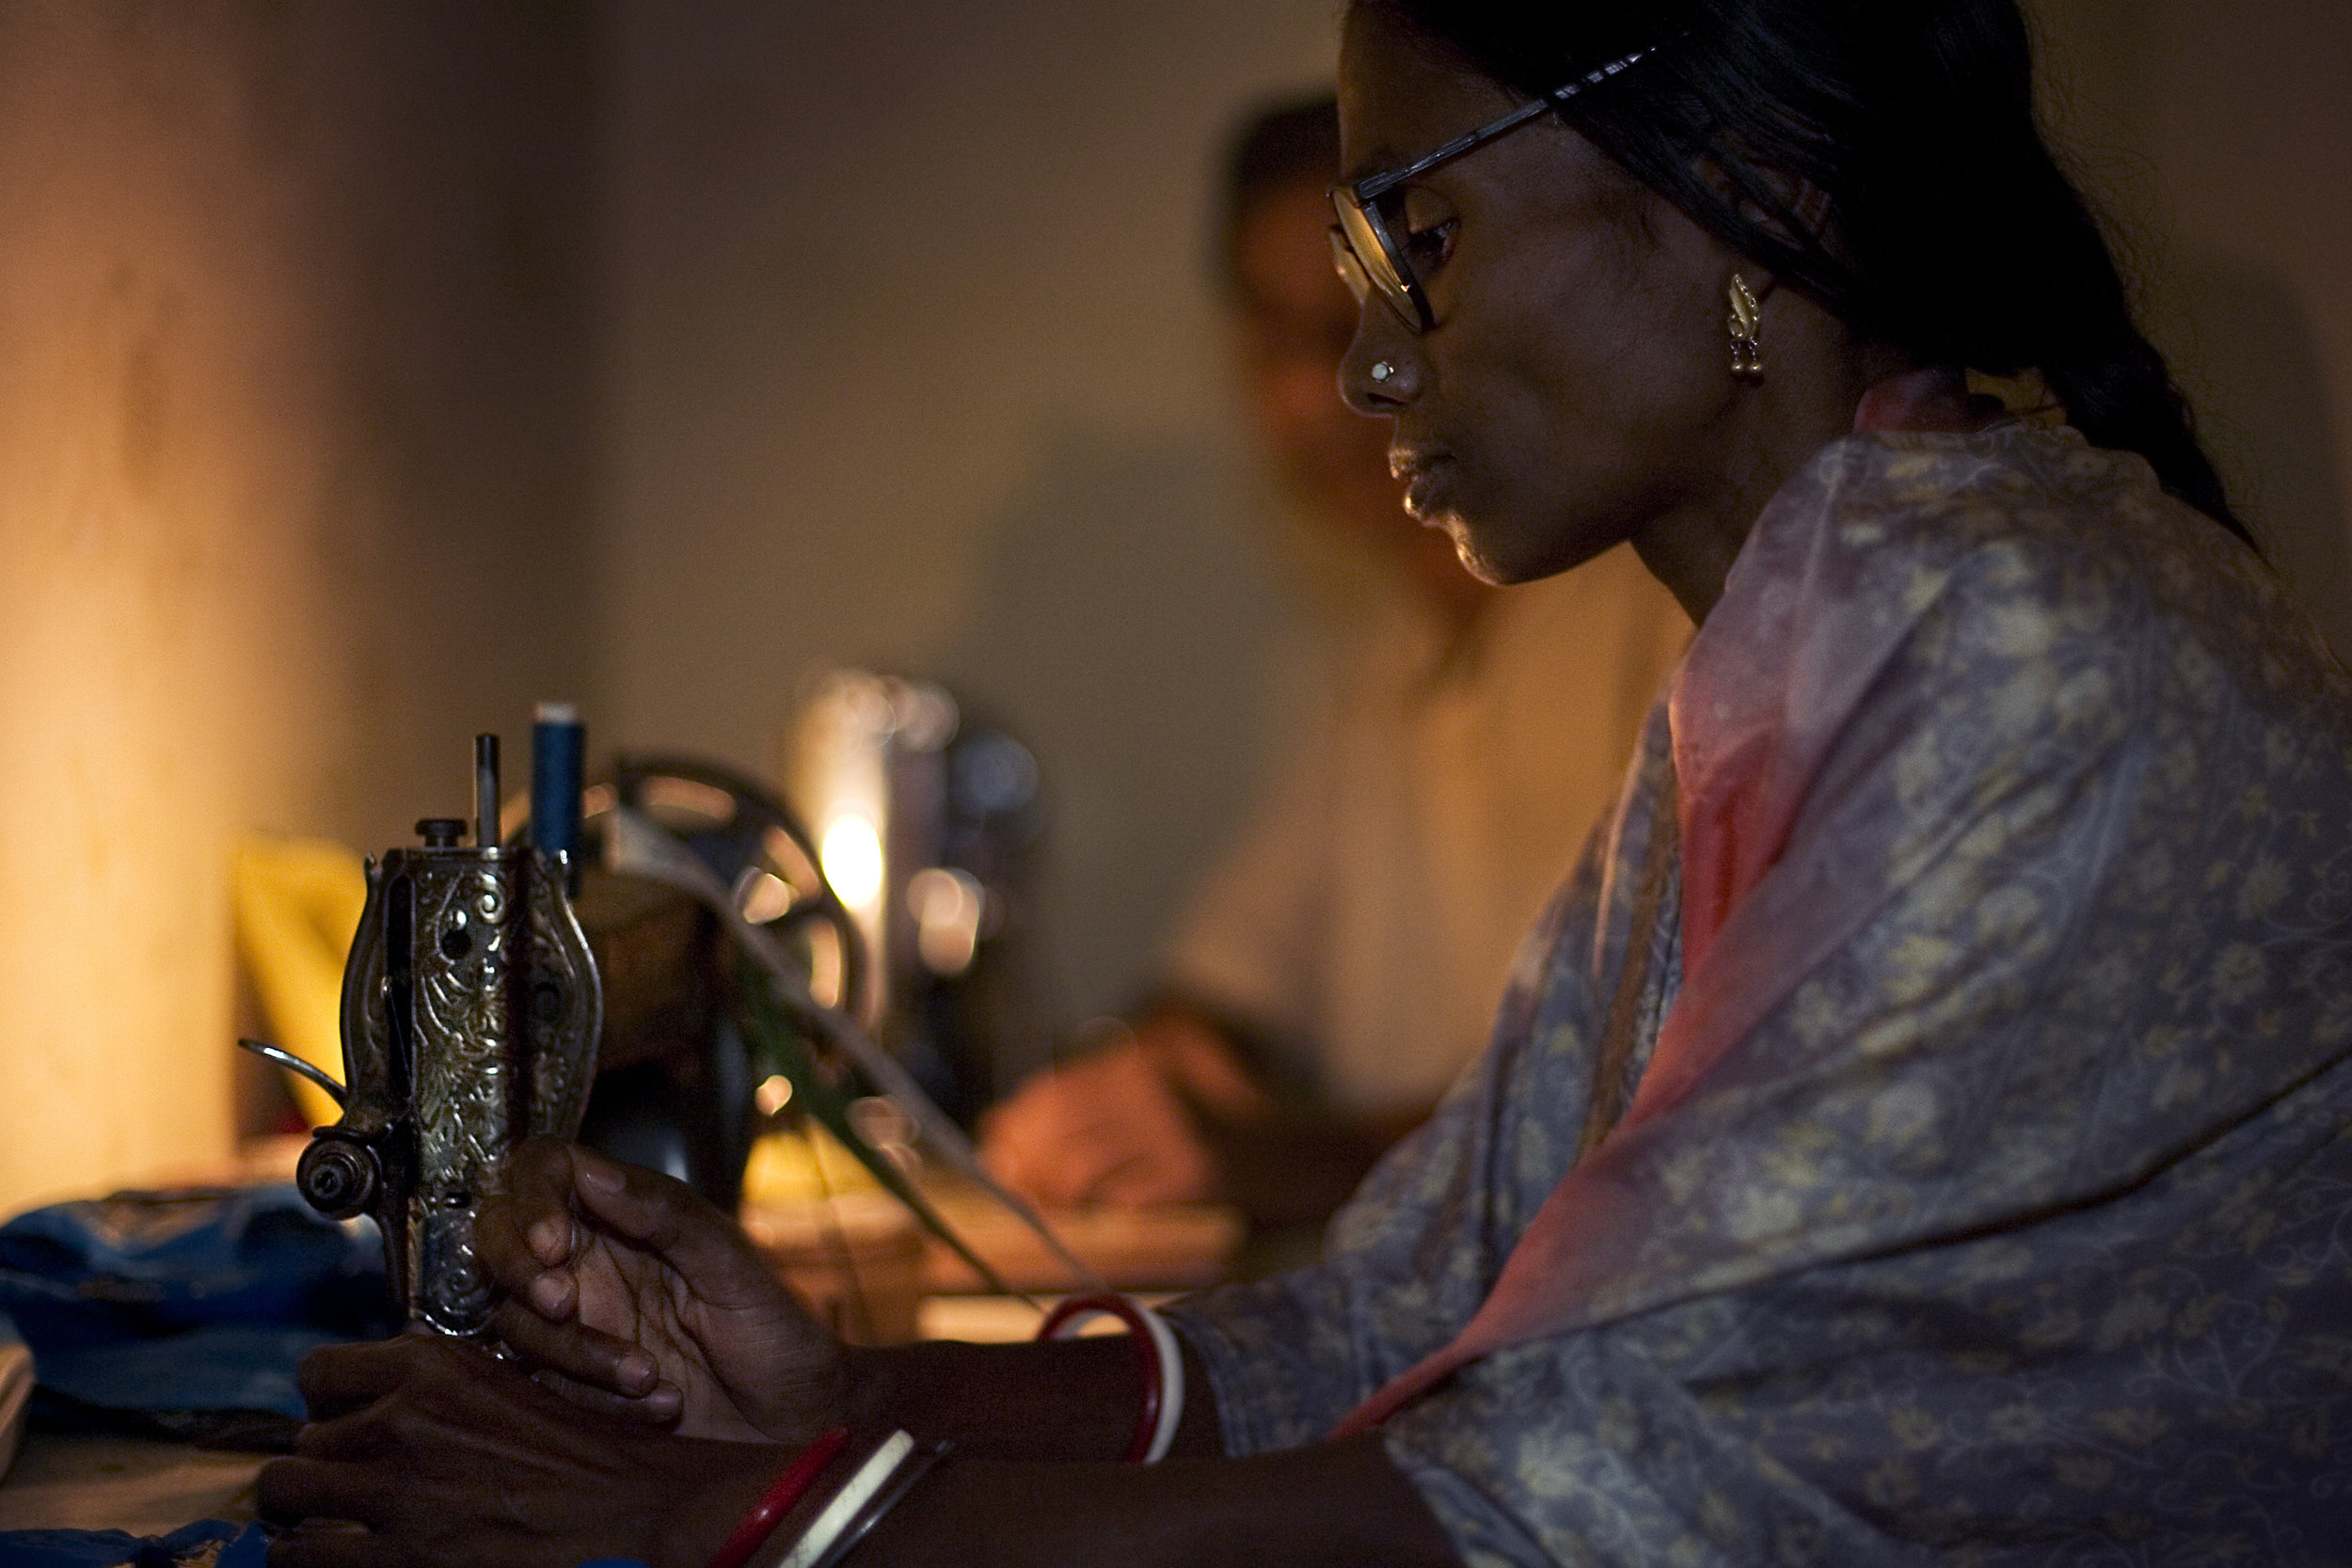 Black woman working by her sewing machine on candlelight, Varana